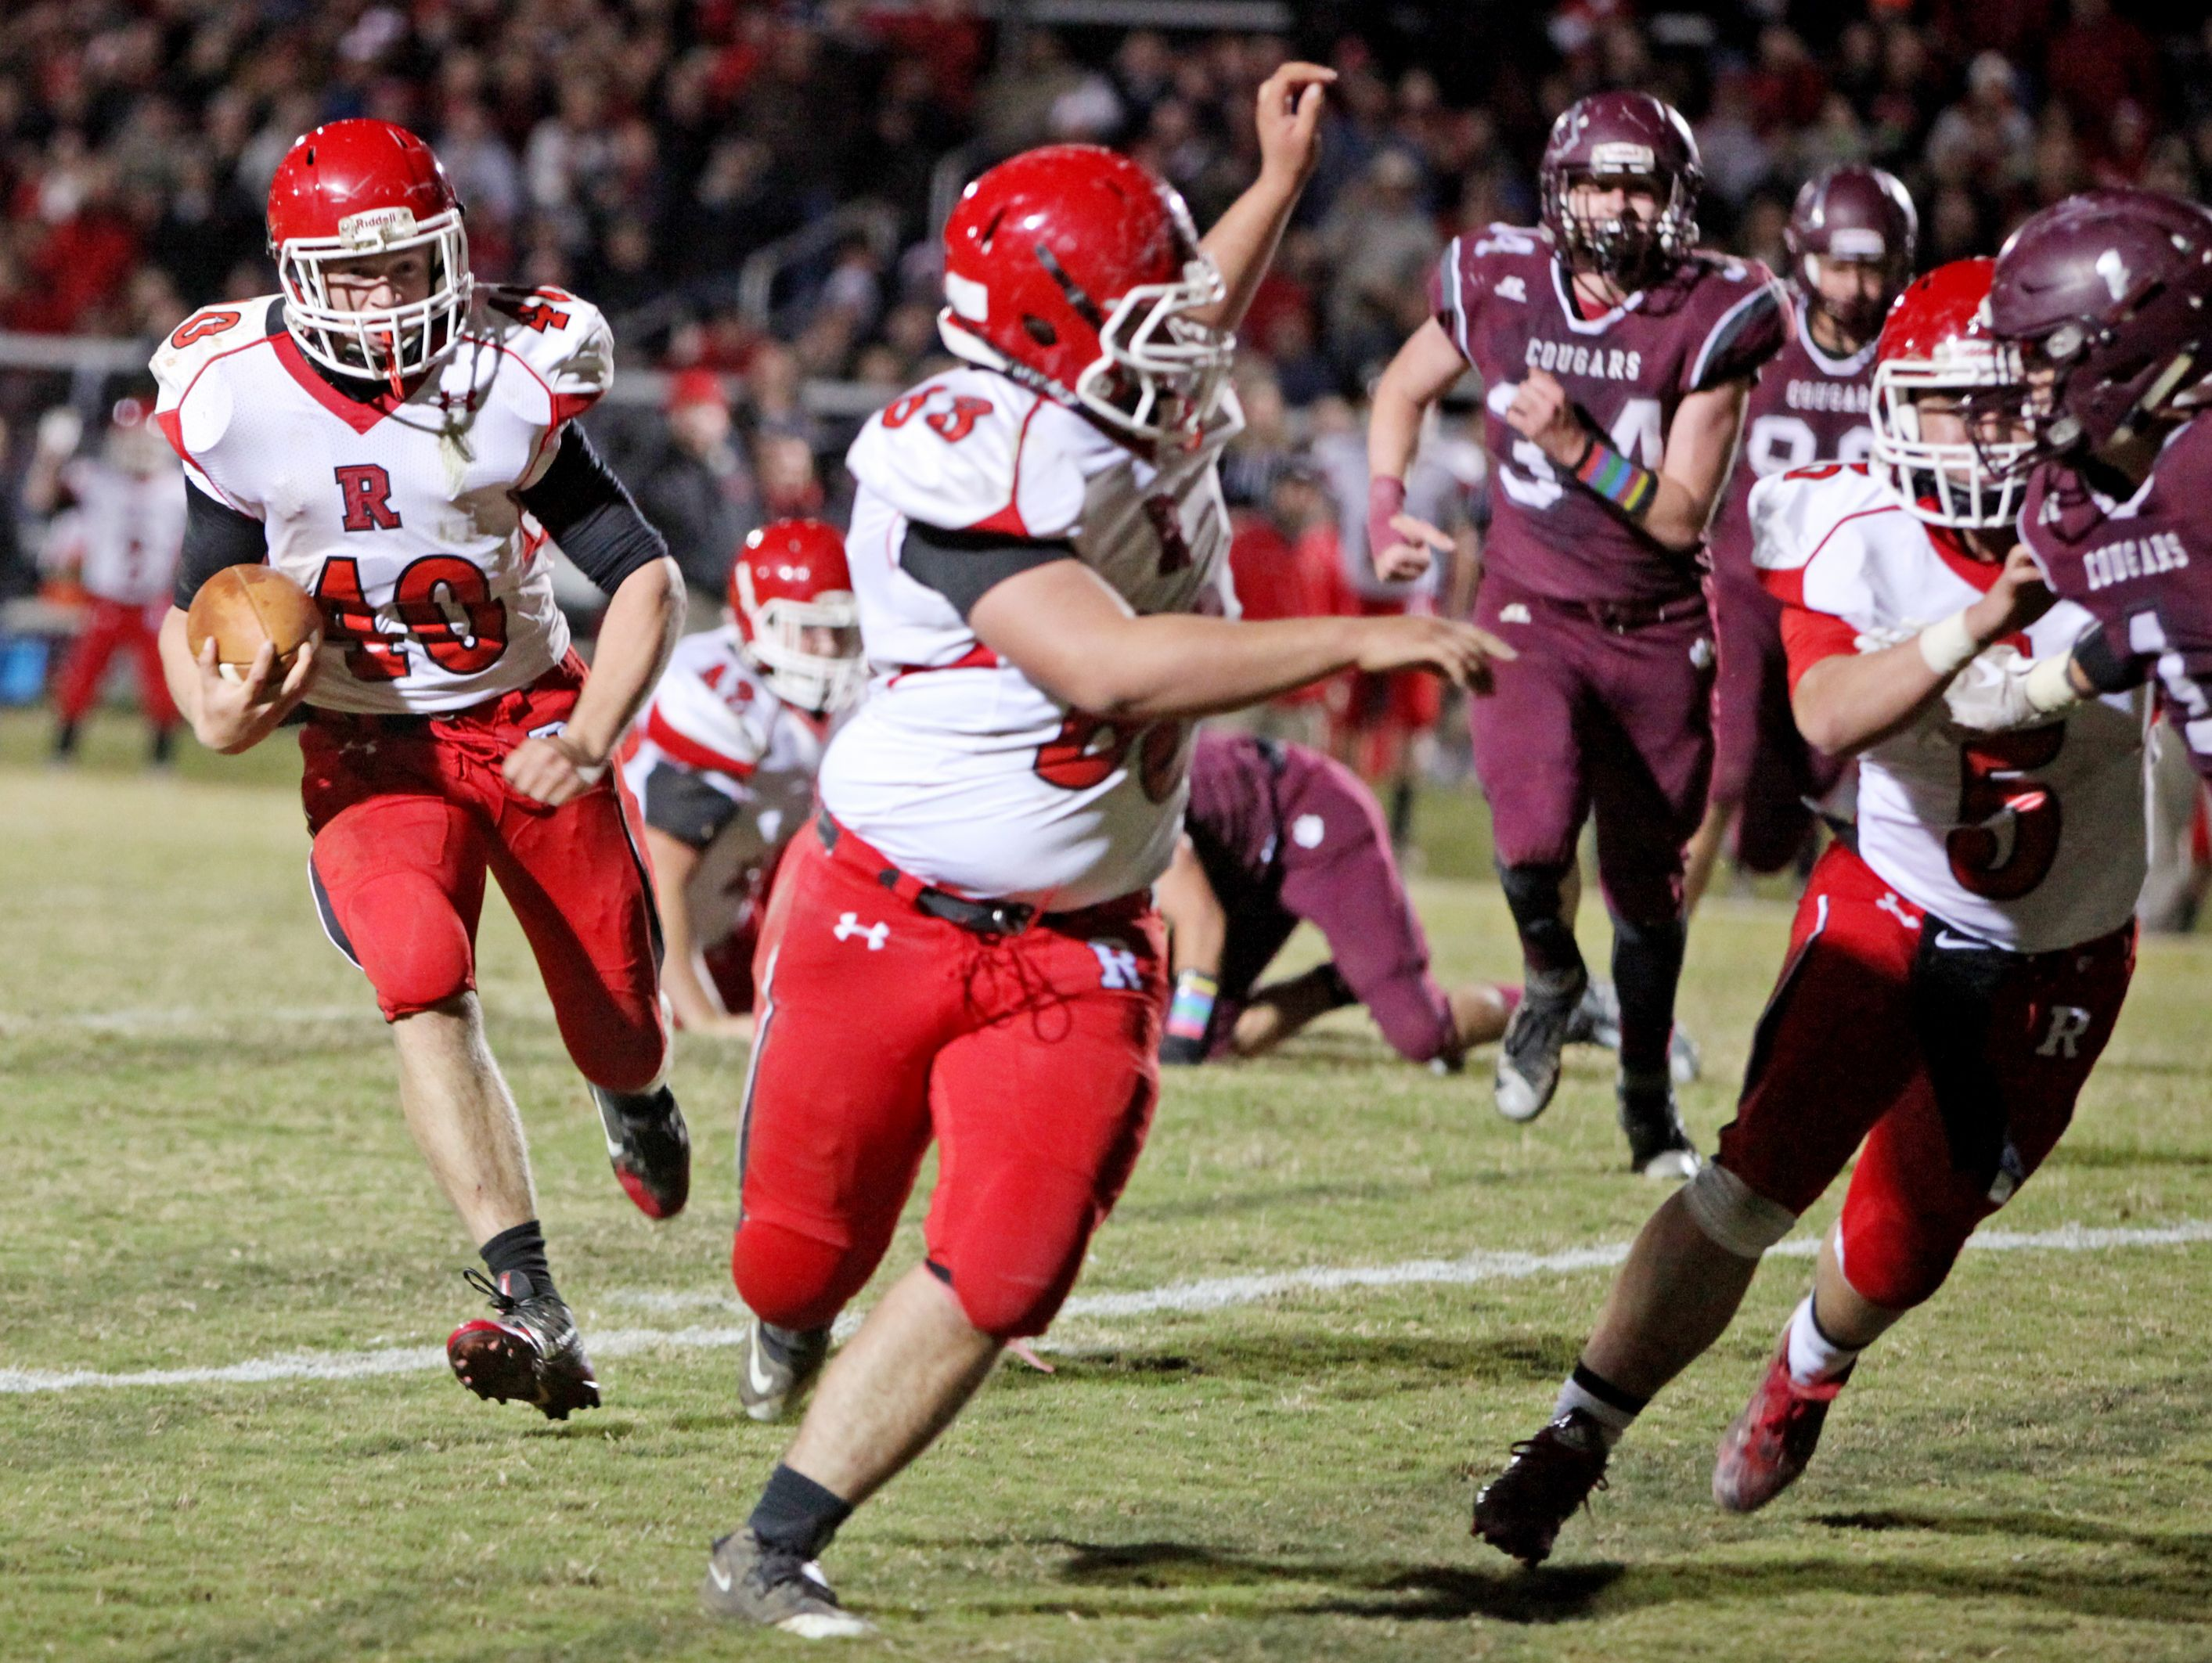 Riverheads' Harrison Schaefer runs the ball for a touchdown in the second quarter of the game on Friday, Nov. 4, 2016 at Stuarts Draft.